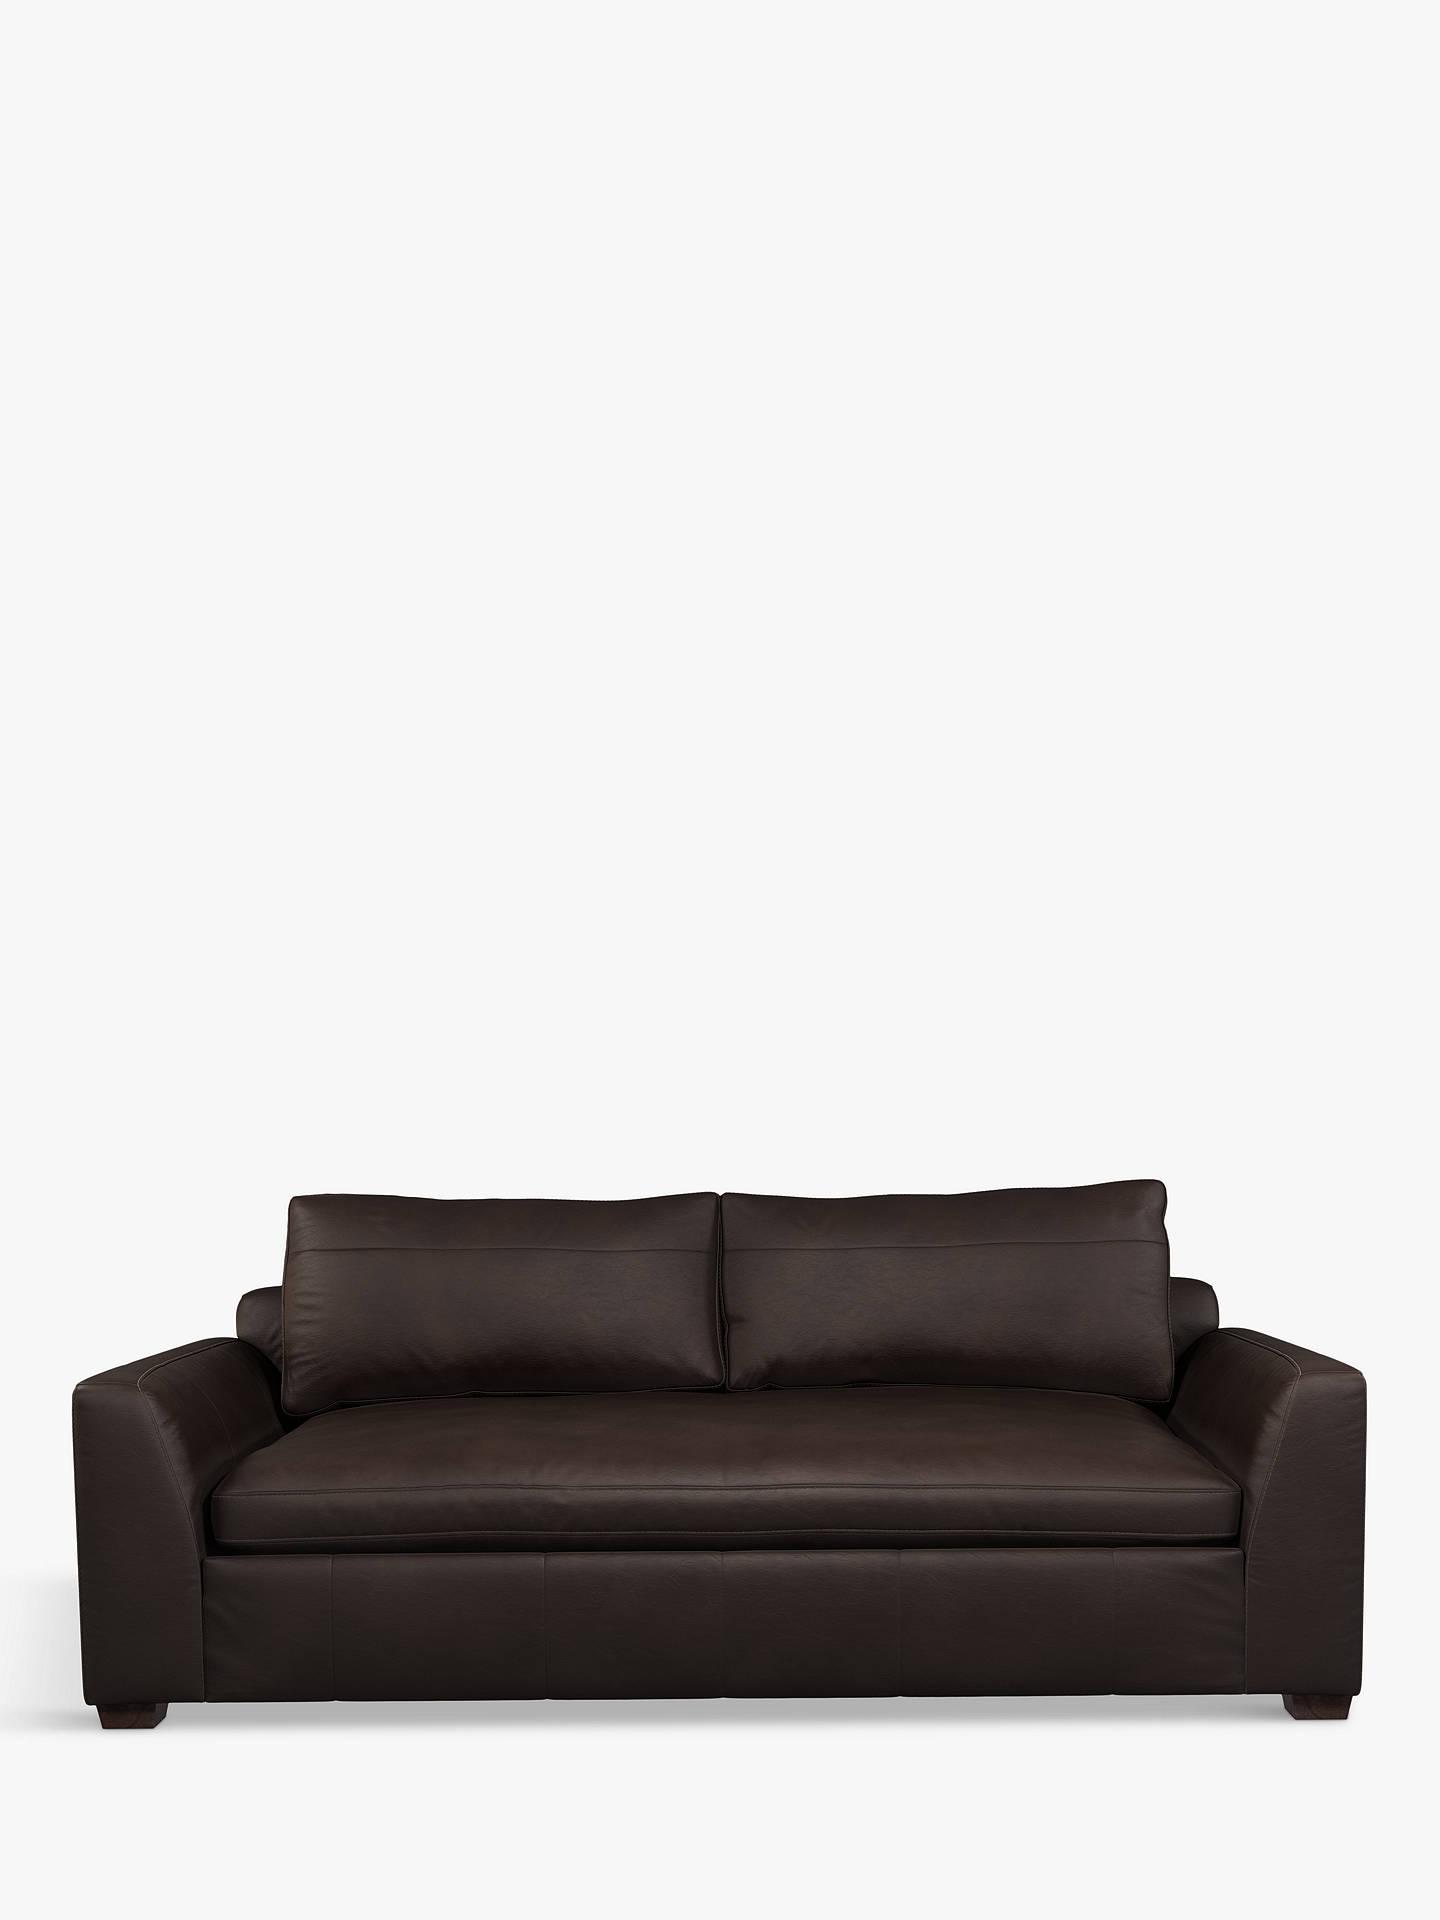 Buy John Lewis & Partners Tortona Leather Large 3 Seater Sofa, Demetra Charcoal Online at johnlewis.com